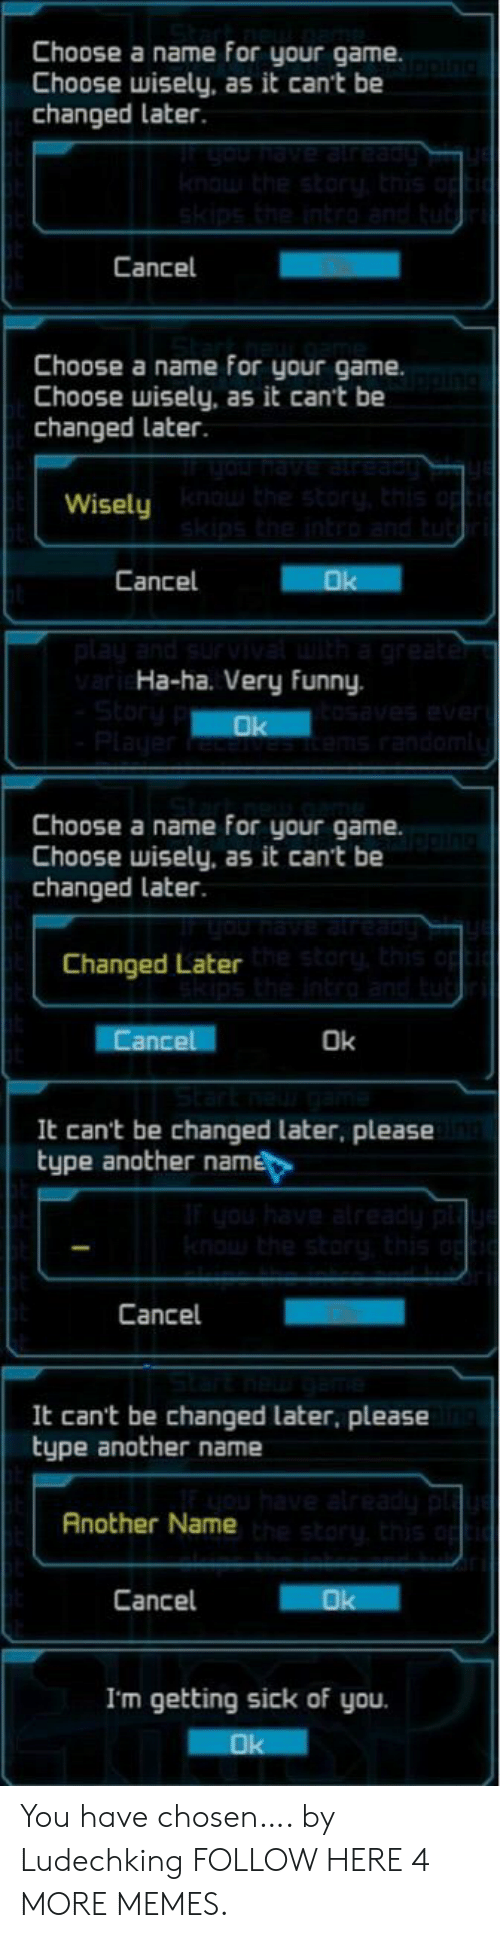 Getting Sick: Choose a name for your game.  Choose wisely, as it can't be  changed later.  uOU nave already  knowthe story, this o  skips the intro and tub  Cancel  Choose a name for your game.  Choose wisely, as it can't be  changed later.  you have atreadu  Wisely the storu, this o  skips the intro and tut  Cancel  Ok  play and survvatuith a greater  vari Ha-ha. Very funny  Story  Player  tosaves ever  tems randomi  Ok  Choose a name for your game  Choose wisely, as it cant be  changed later.  Changed Later storthis o  ps the intro and  Cancel  Ok  It can't be changed later, please  type another name  Iyou have already pl  knouthe story, this op  Cancel  It can't be changed later, please  type another name  have alreadu p  Another Nameh story this op  Cancel  Ok  I'm getting sick of you  Ok You have chosen…. by Ludechking FOLLOW HERE 4 MORE MEMES.